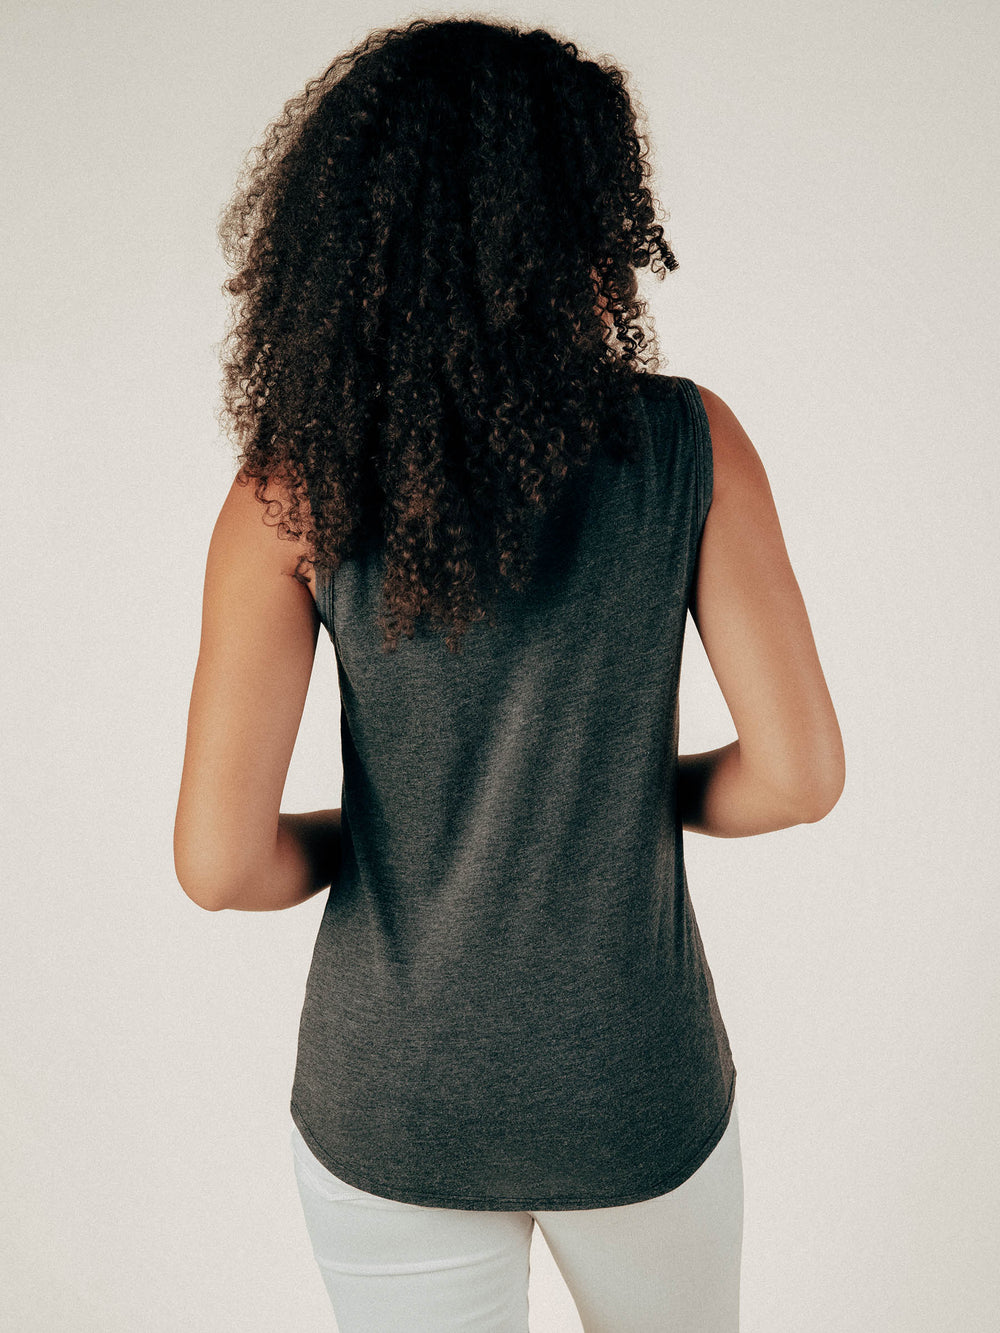 Faded Black Tank Top Curved Hem Tee - Graceful District